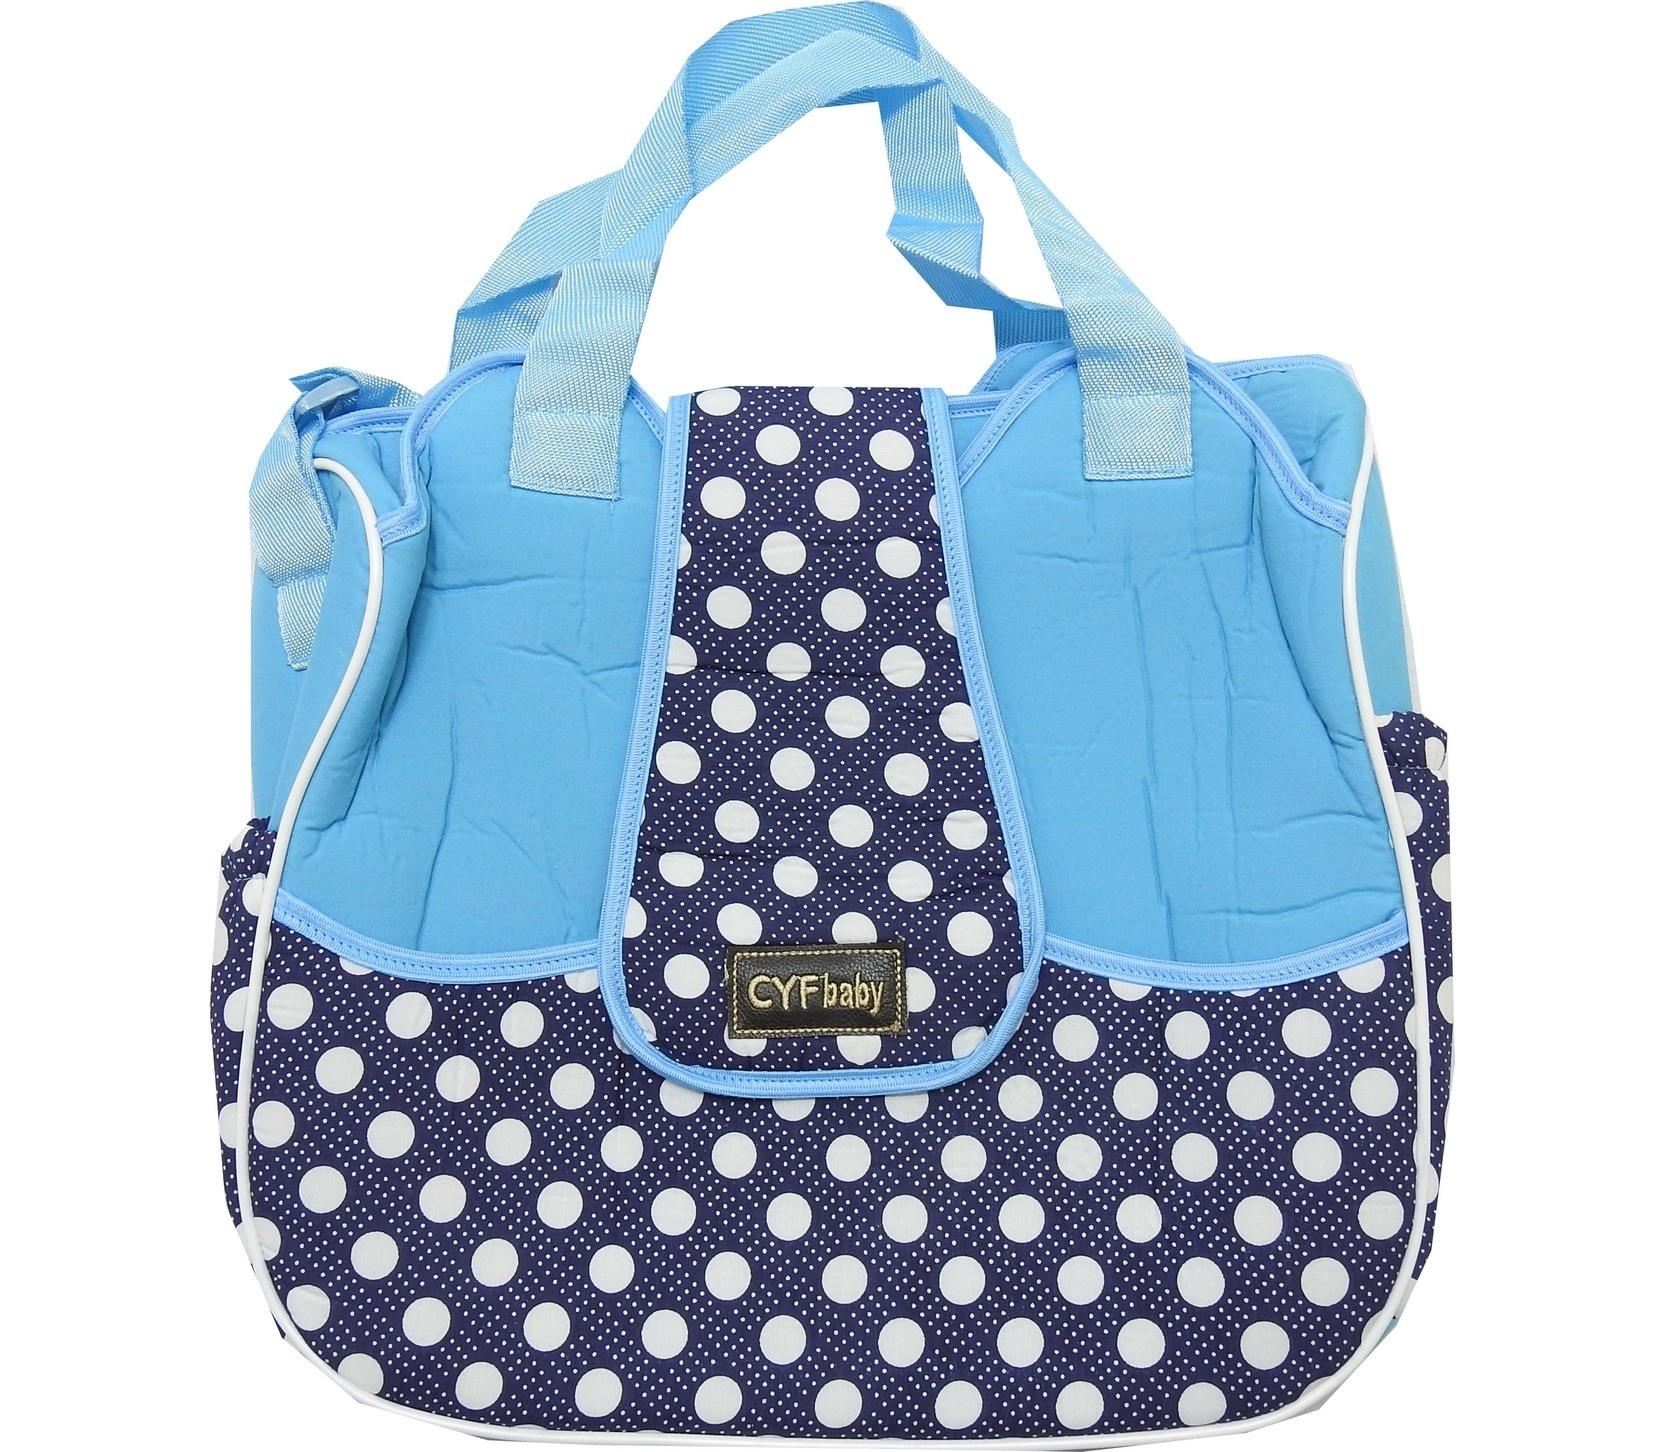 FRONT LAPEL DESIGNED SPOTTY EMBROIDERY CARE BAG